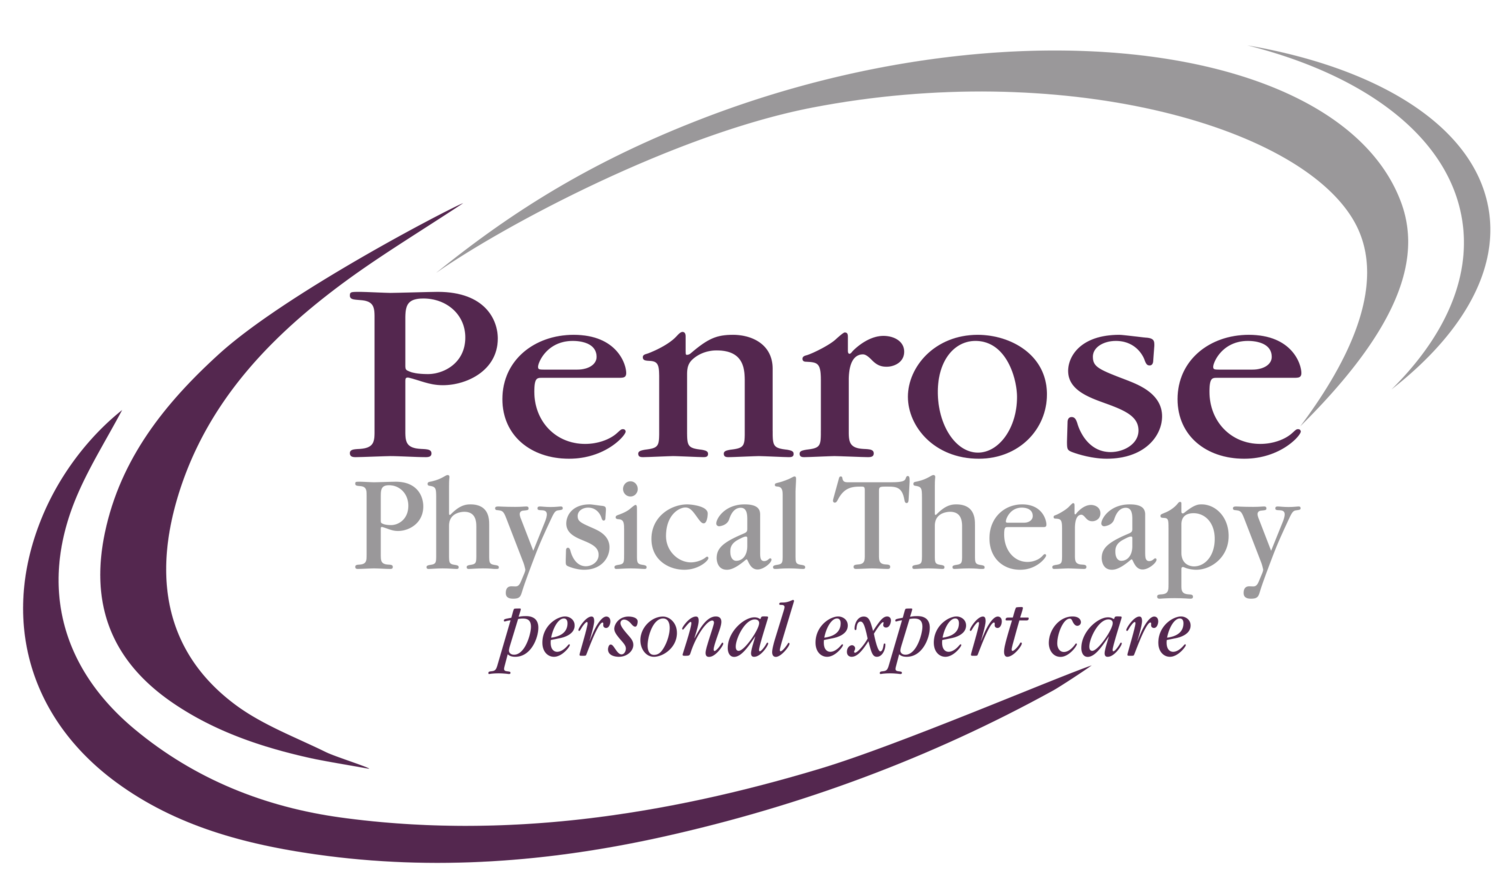 Ankle sprain physical therapy - Penrose Physical Therapy